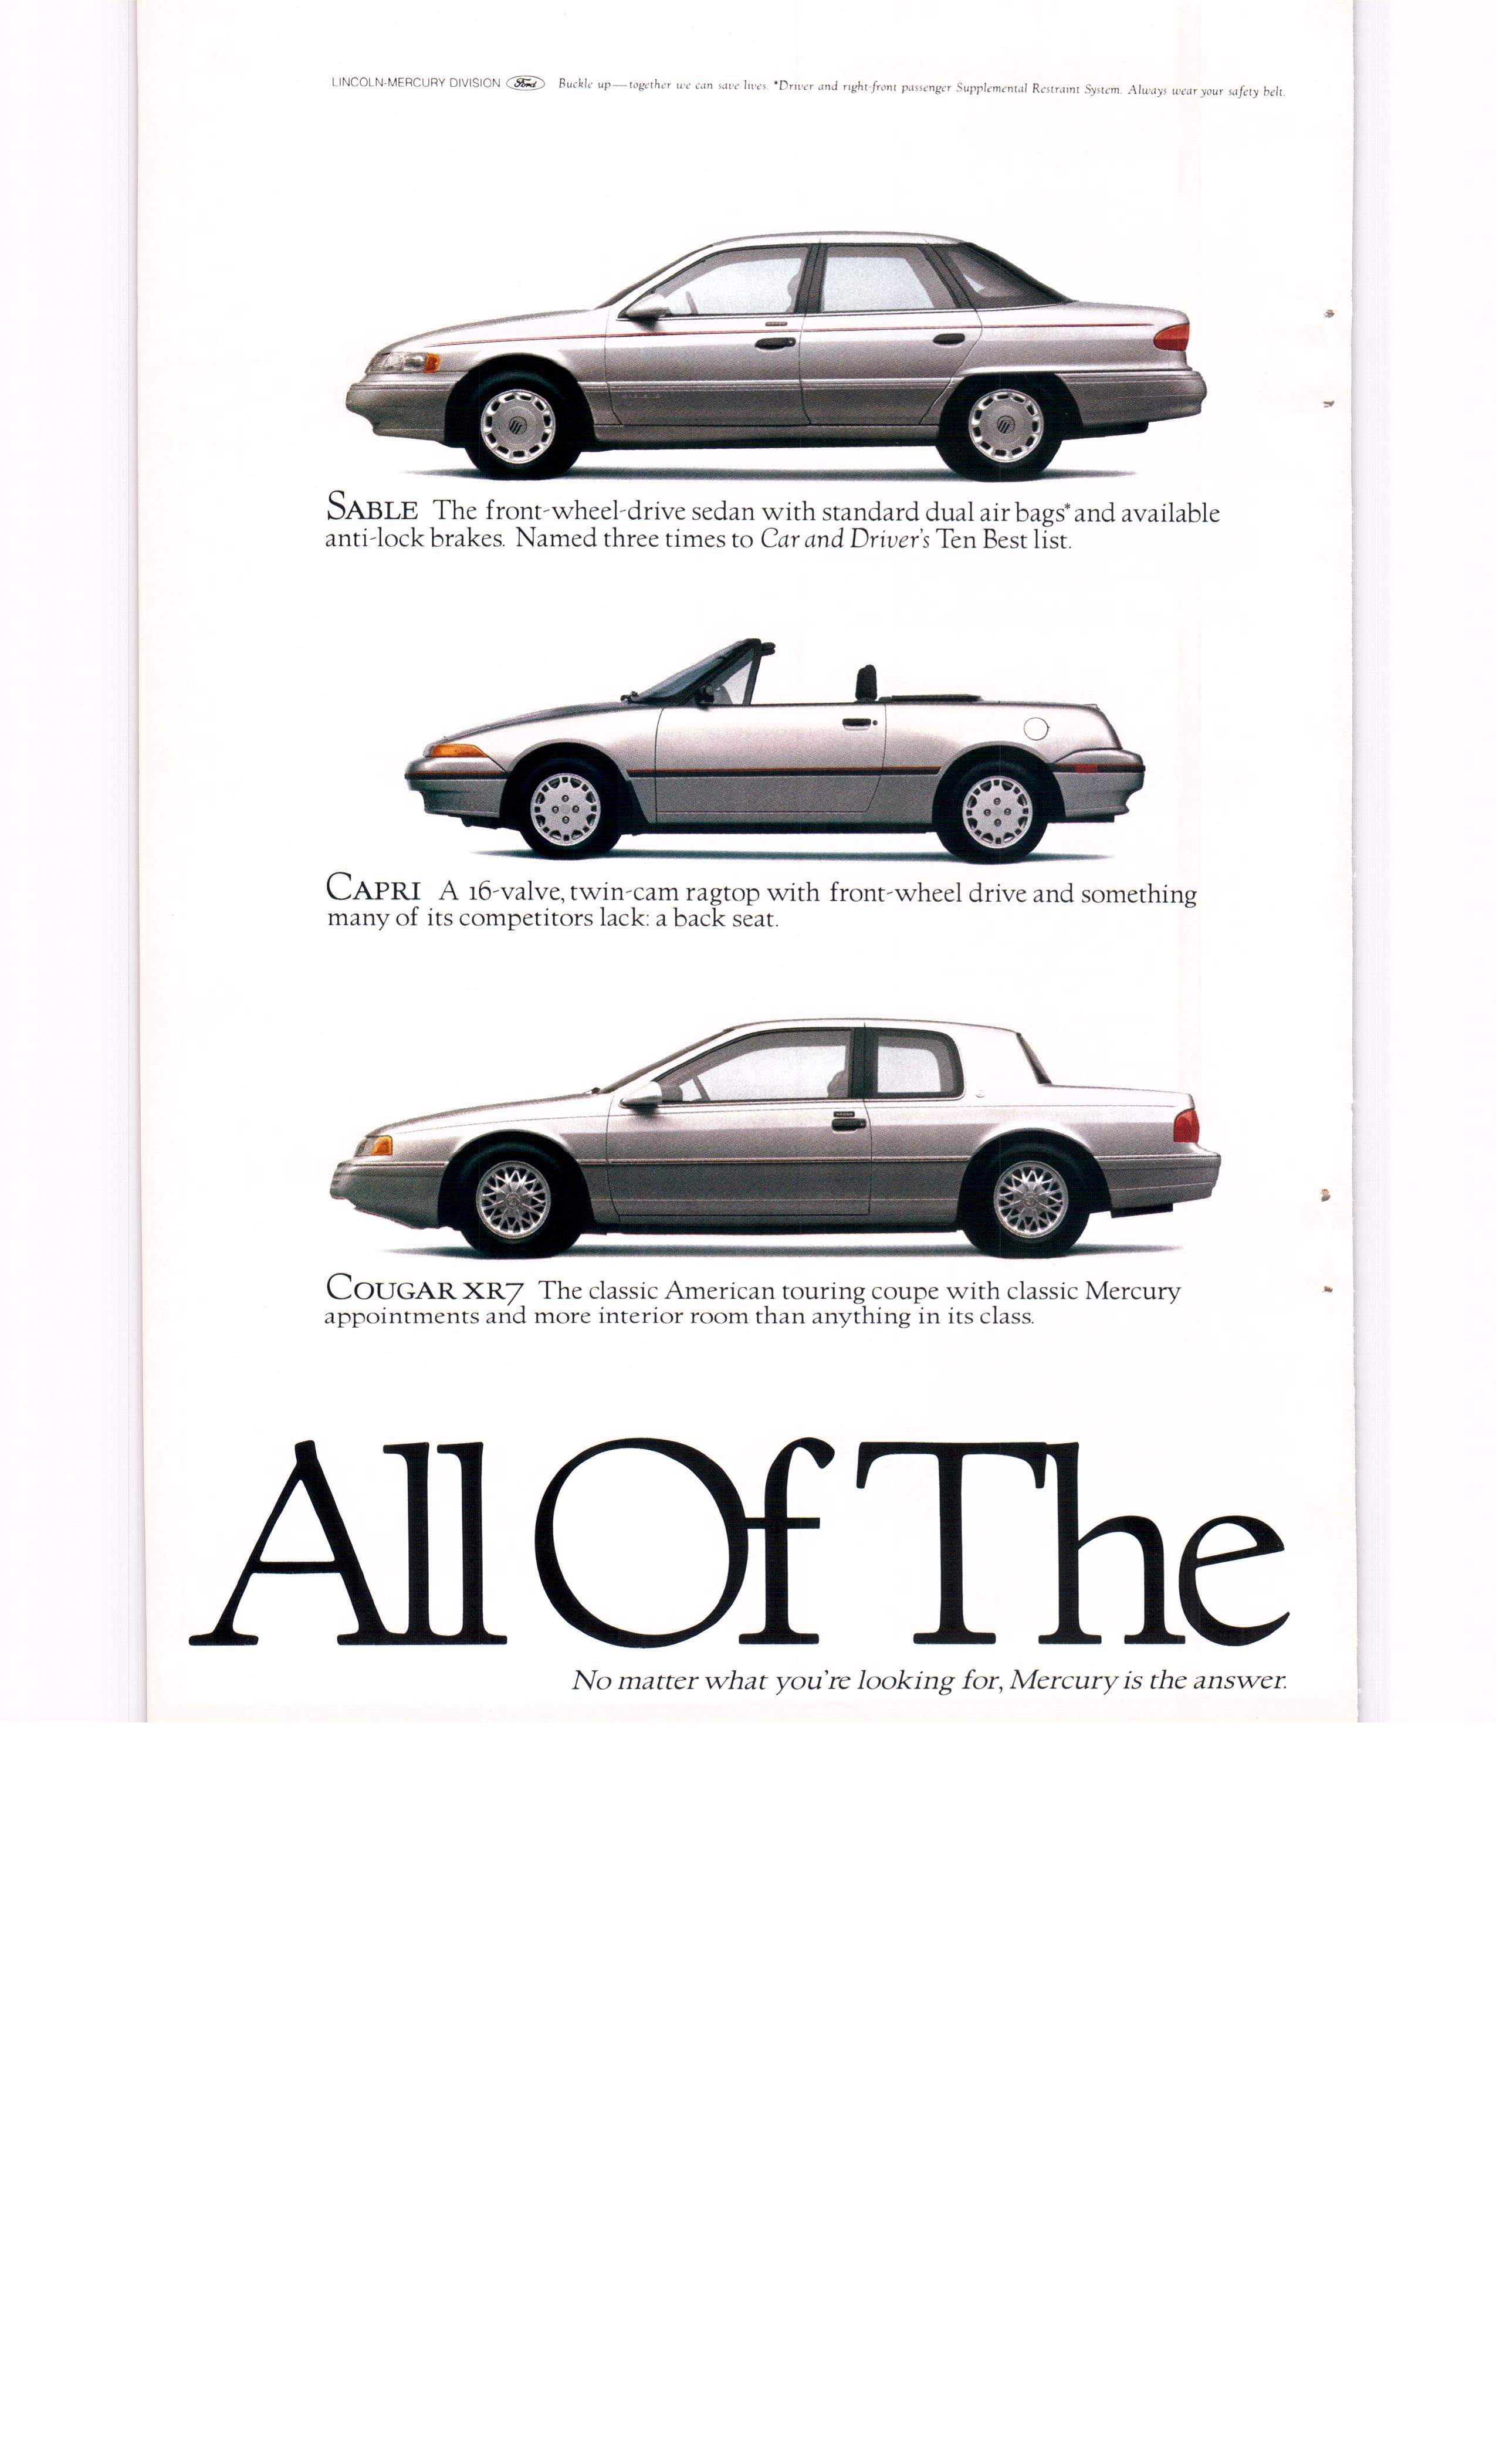 1993 Mercury Villager Tracer Grand Marquis ad 1 - National ...